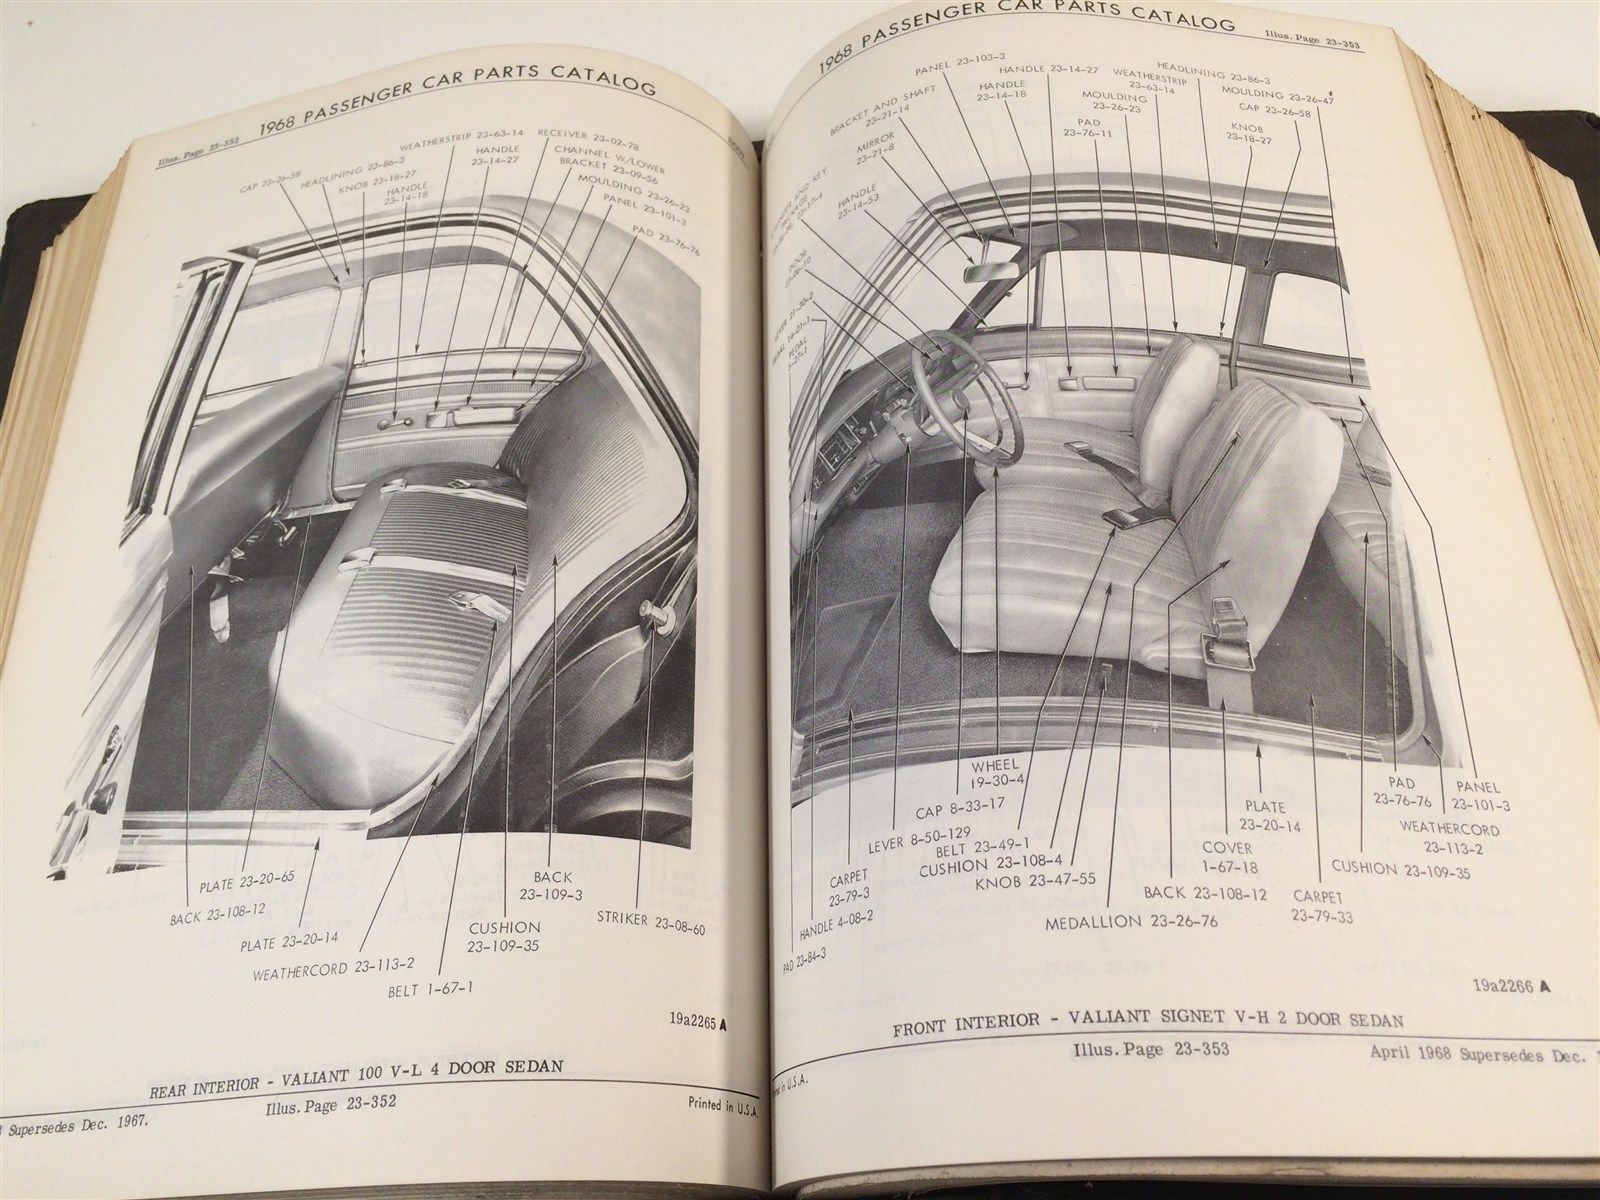 1968 United Motors Passenger Car Parts Catalog Illustrated